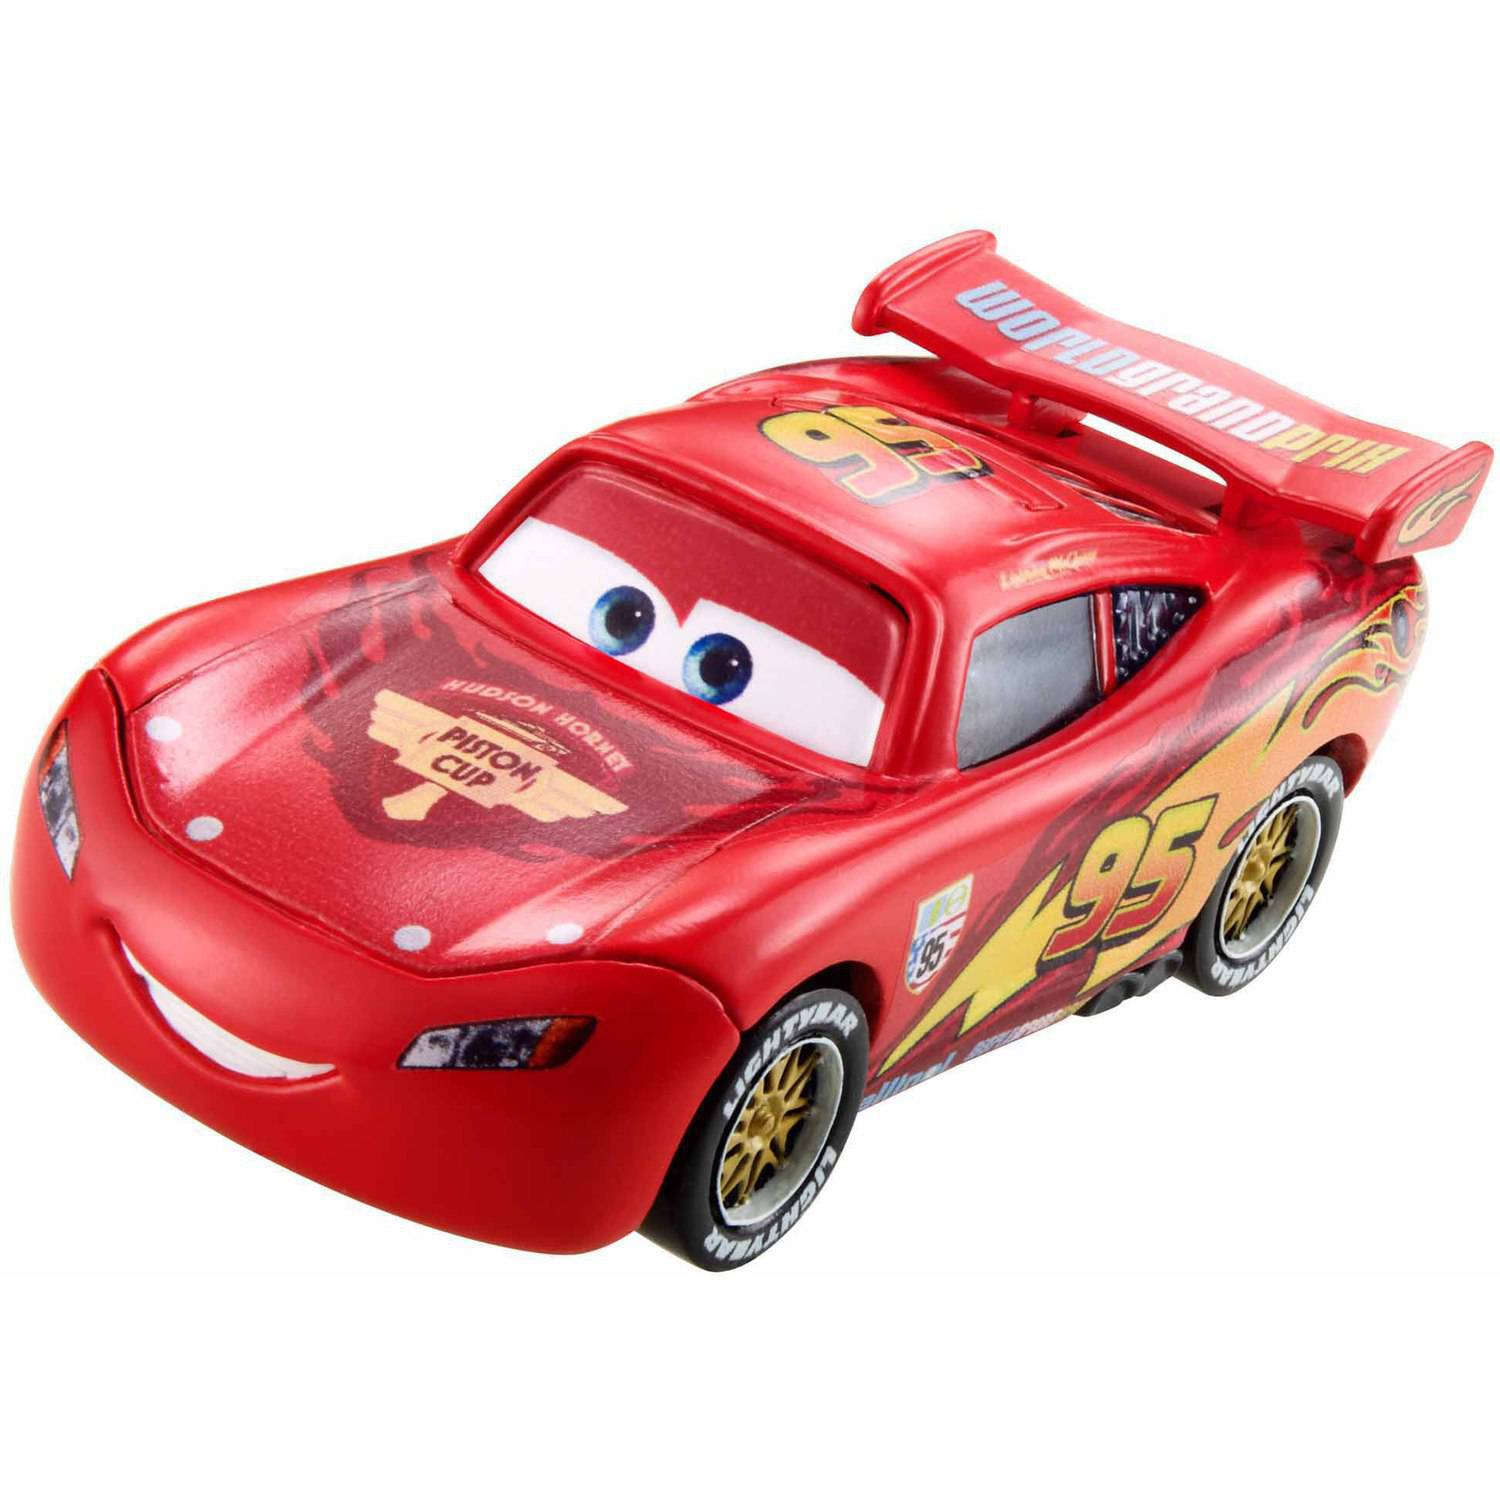 Cars Die-Cast Vehicle, LT McQueen